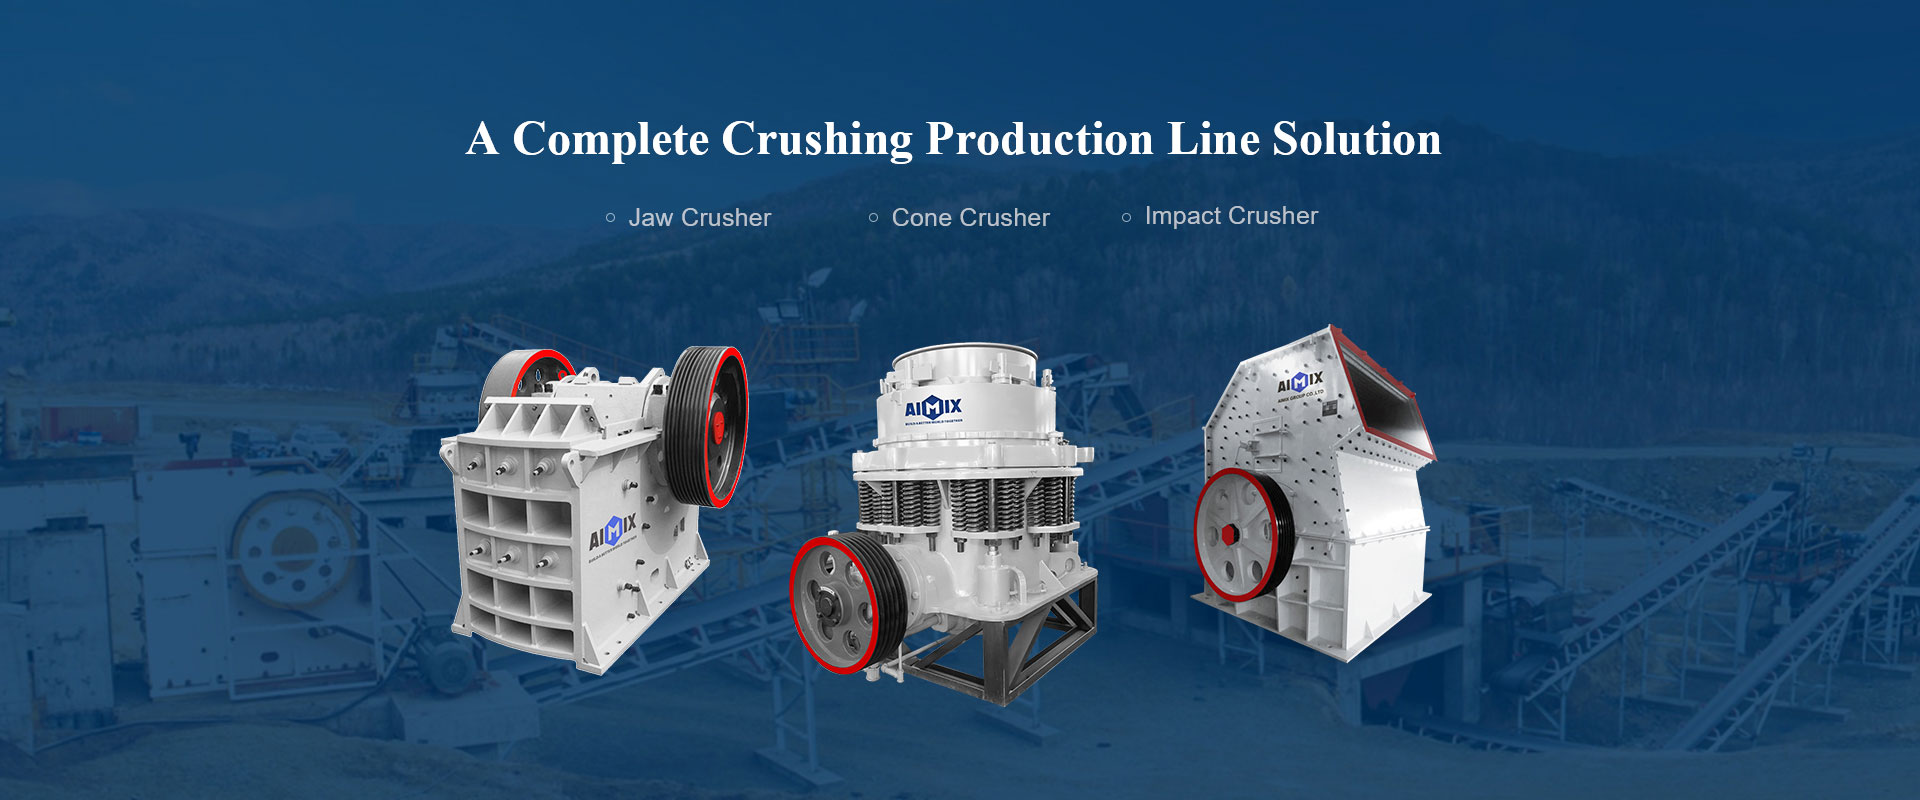 A Complete Crushing Production Line Solution